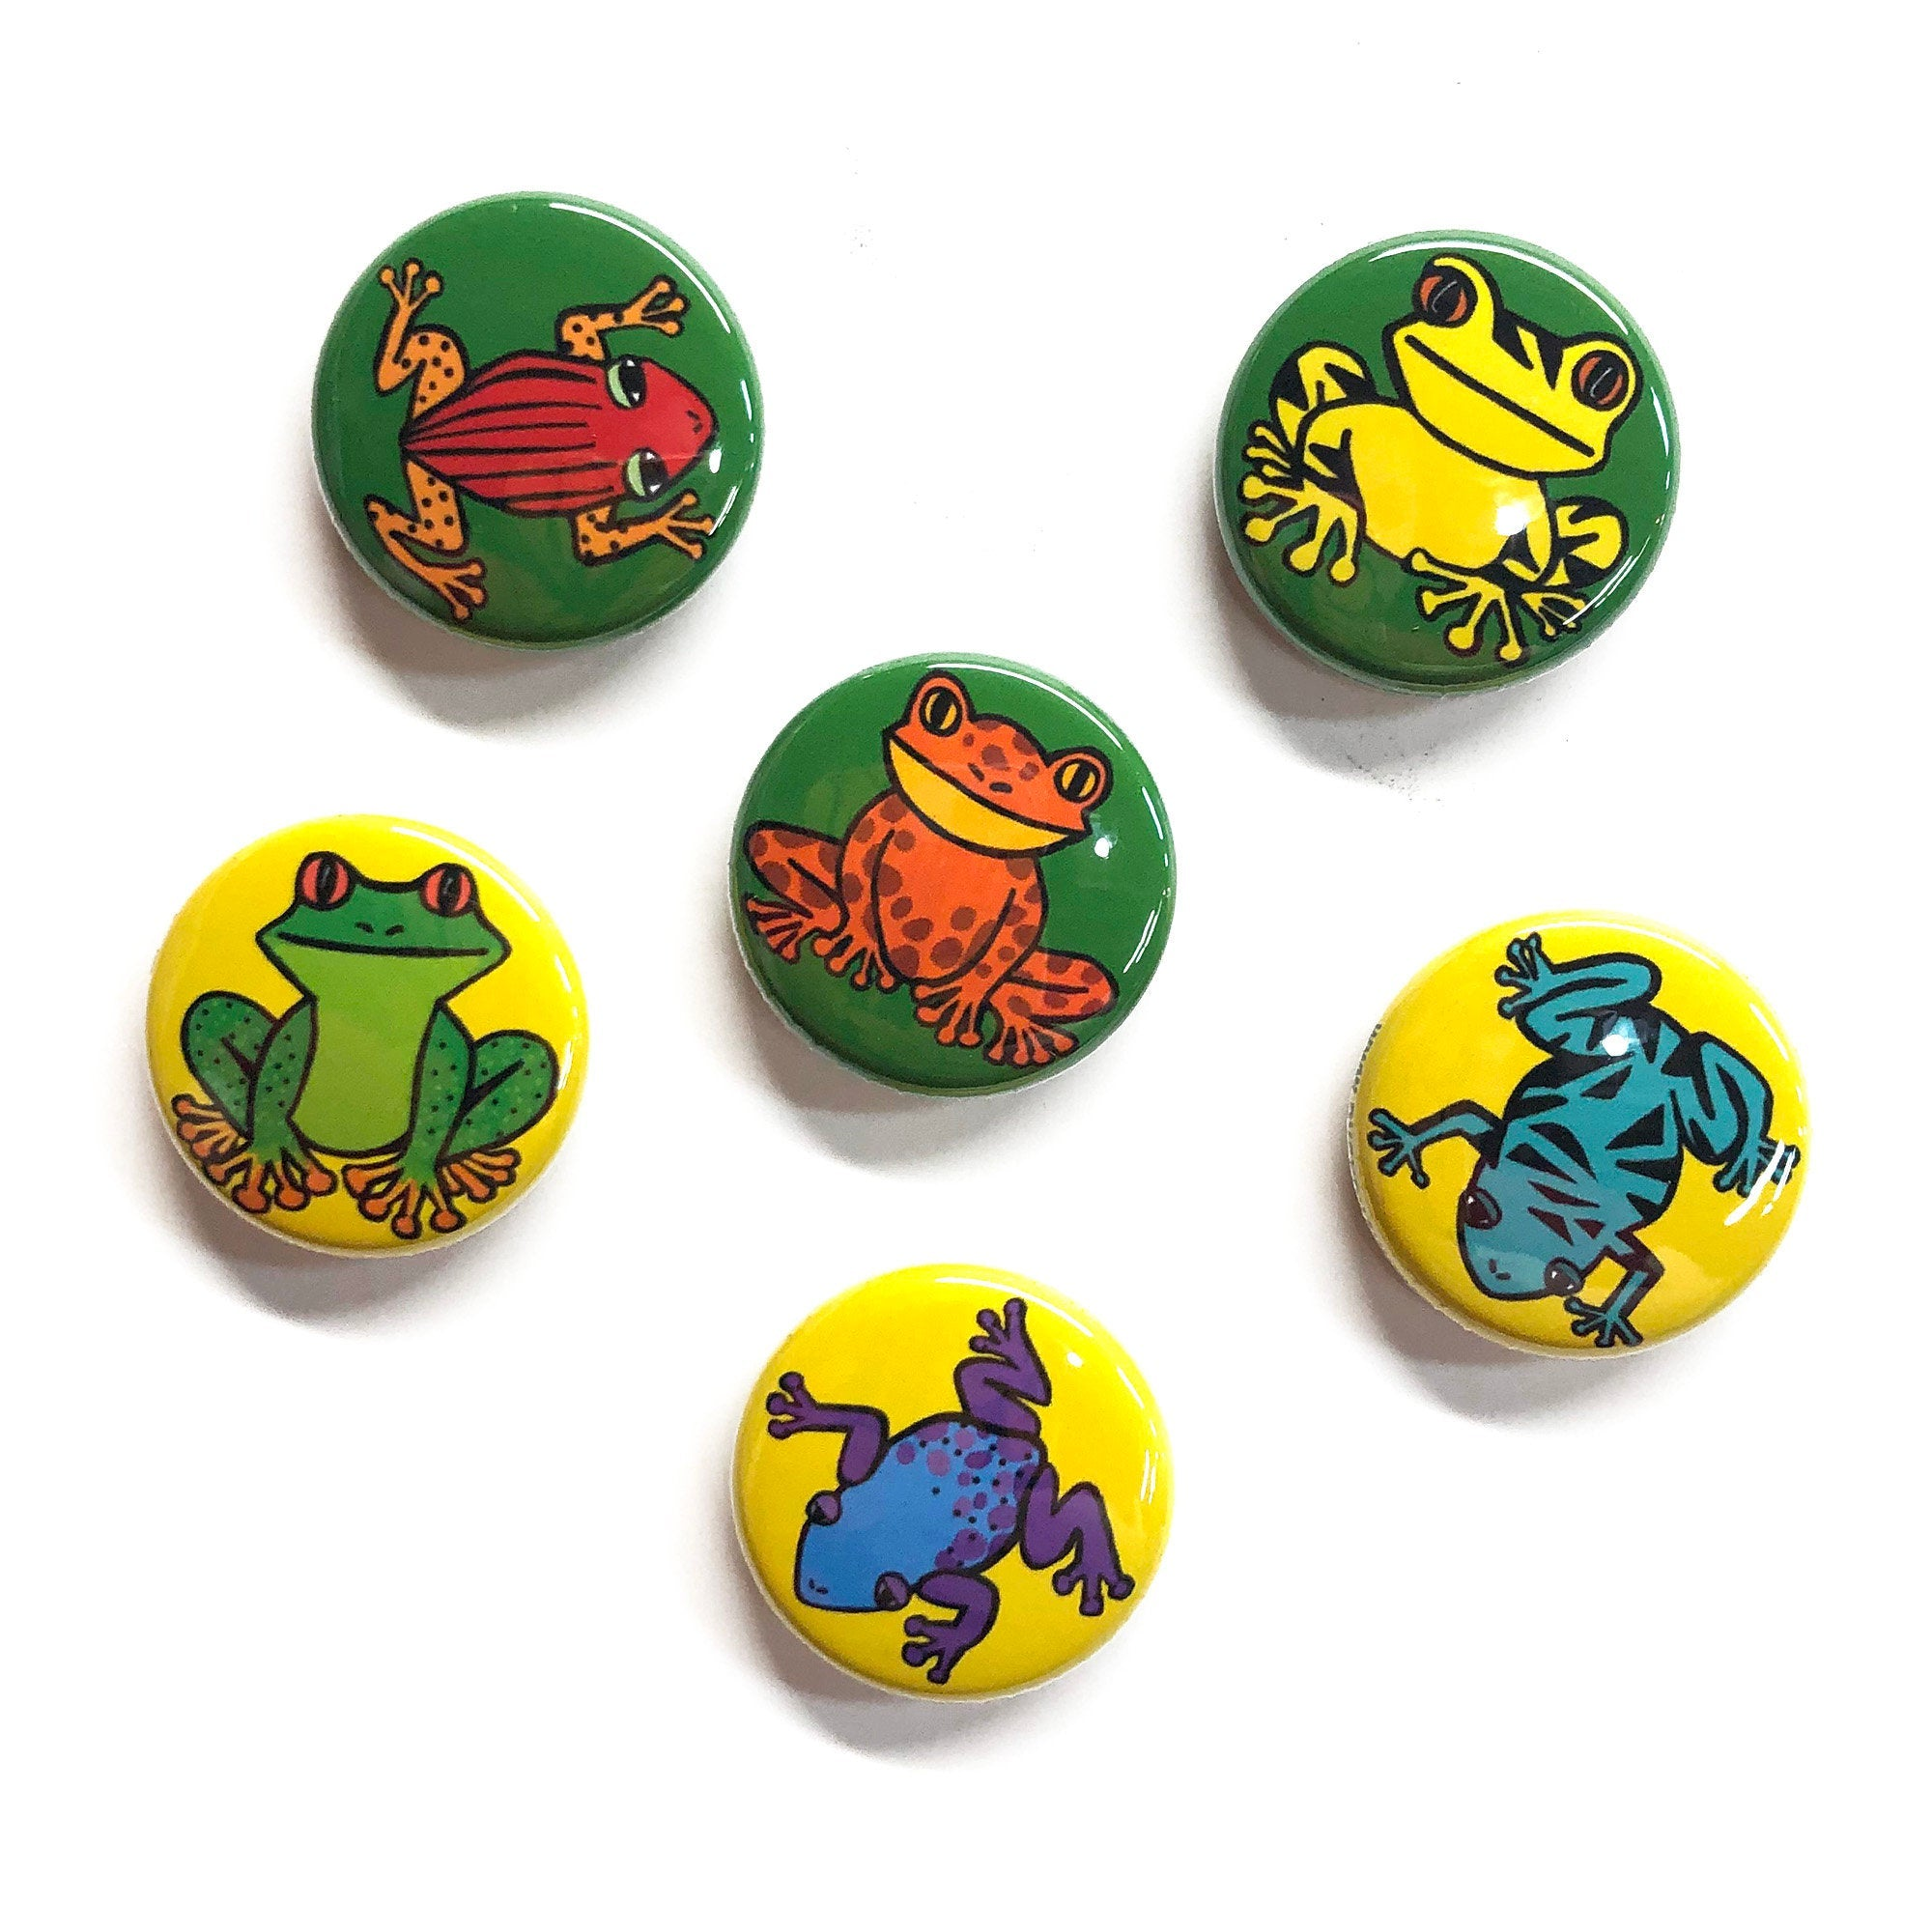 Frog Magnet or Pin Back Button Set - Colorful Tree Frog Fridge Magnets or Pinbacks